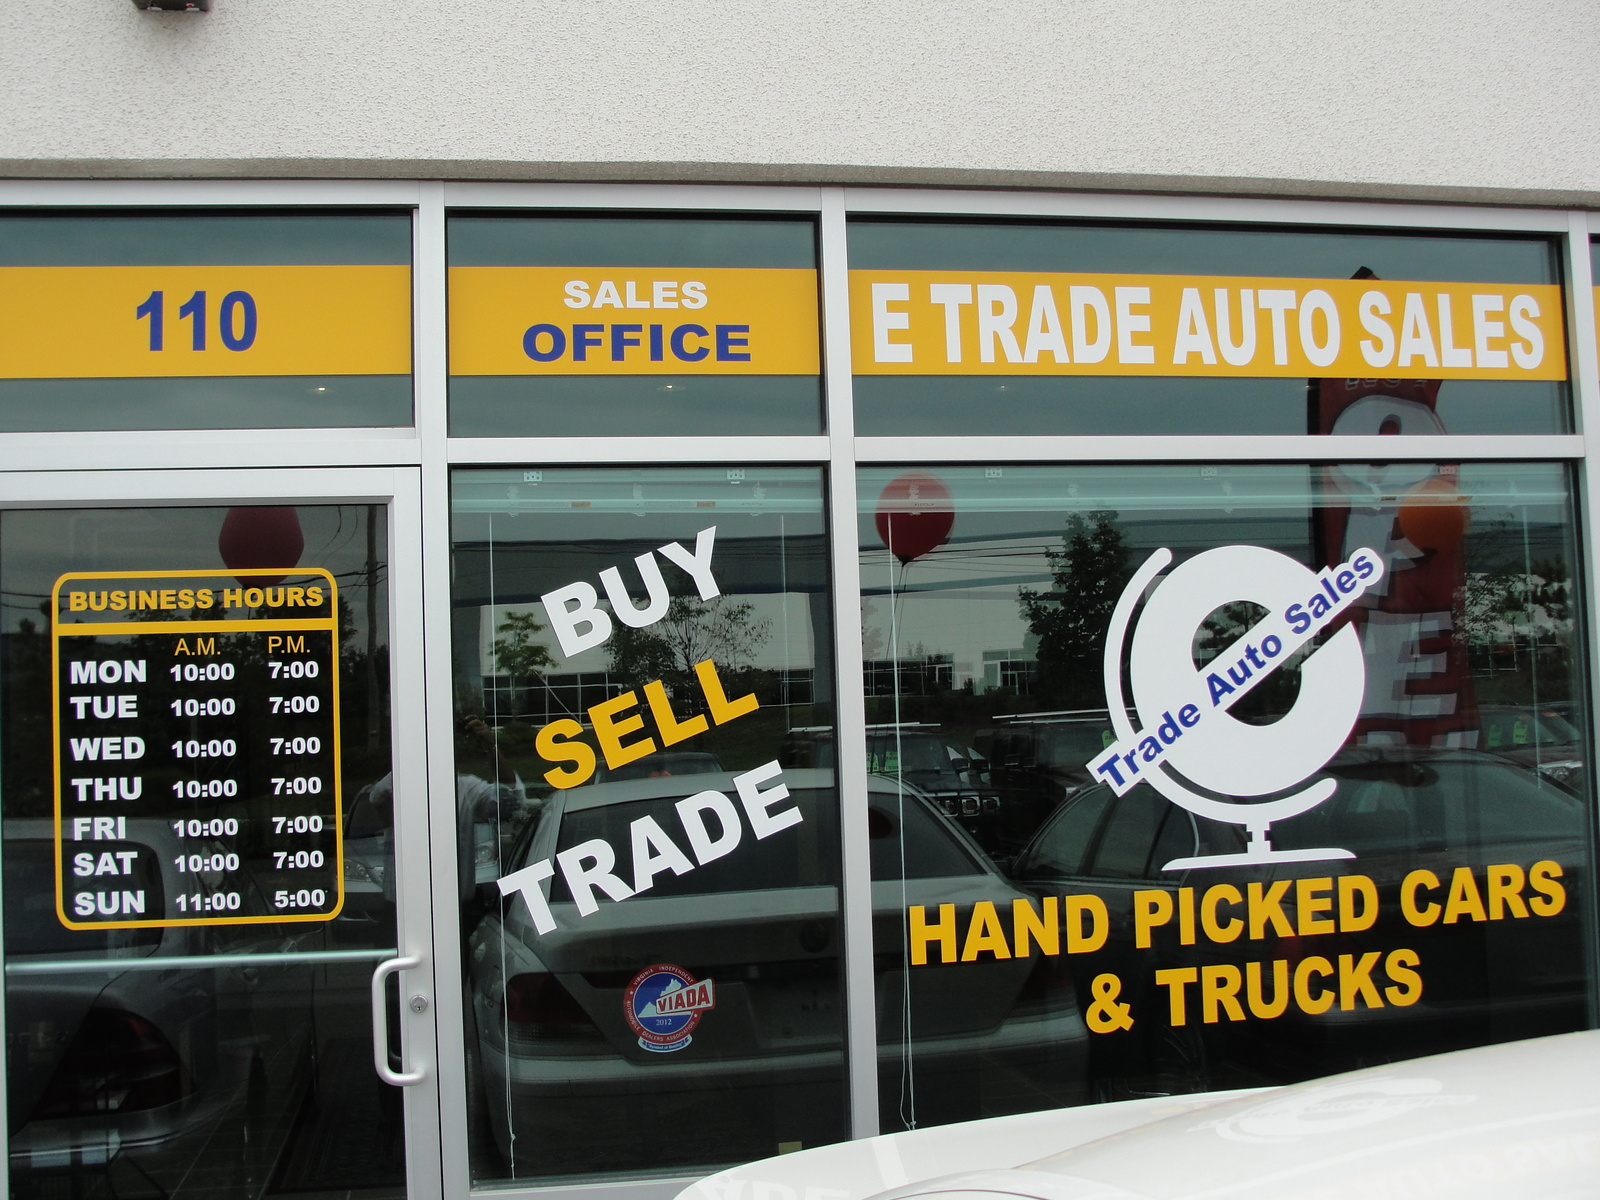 E Trade Auto Sales Chantilly Va Read Consumer Reviews